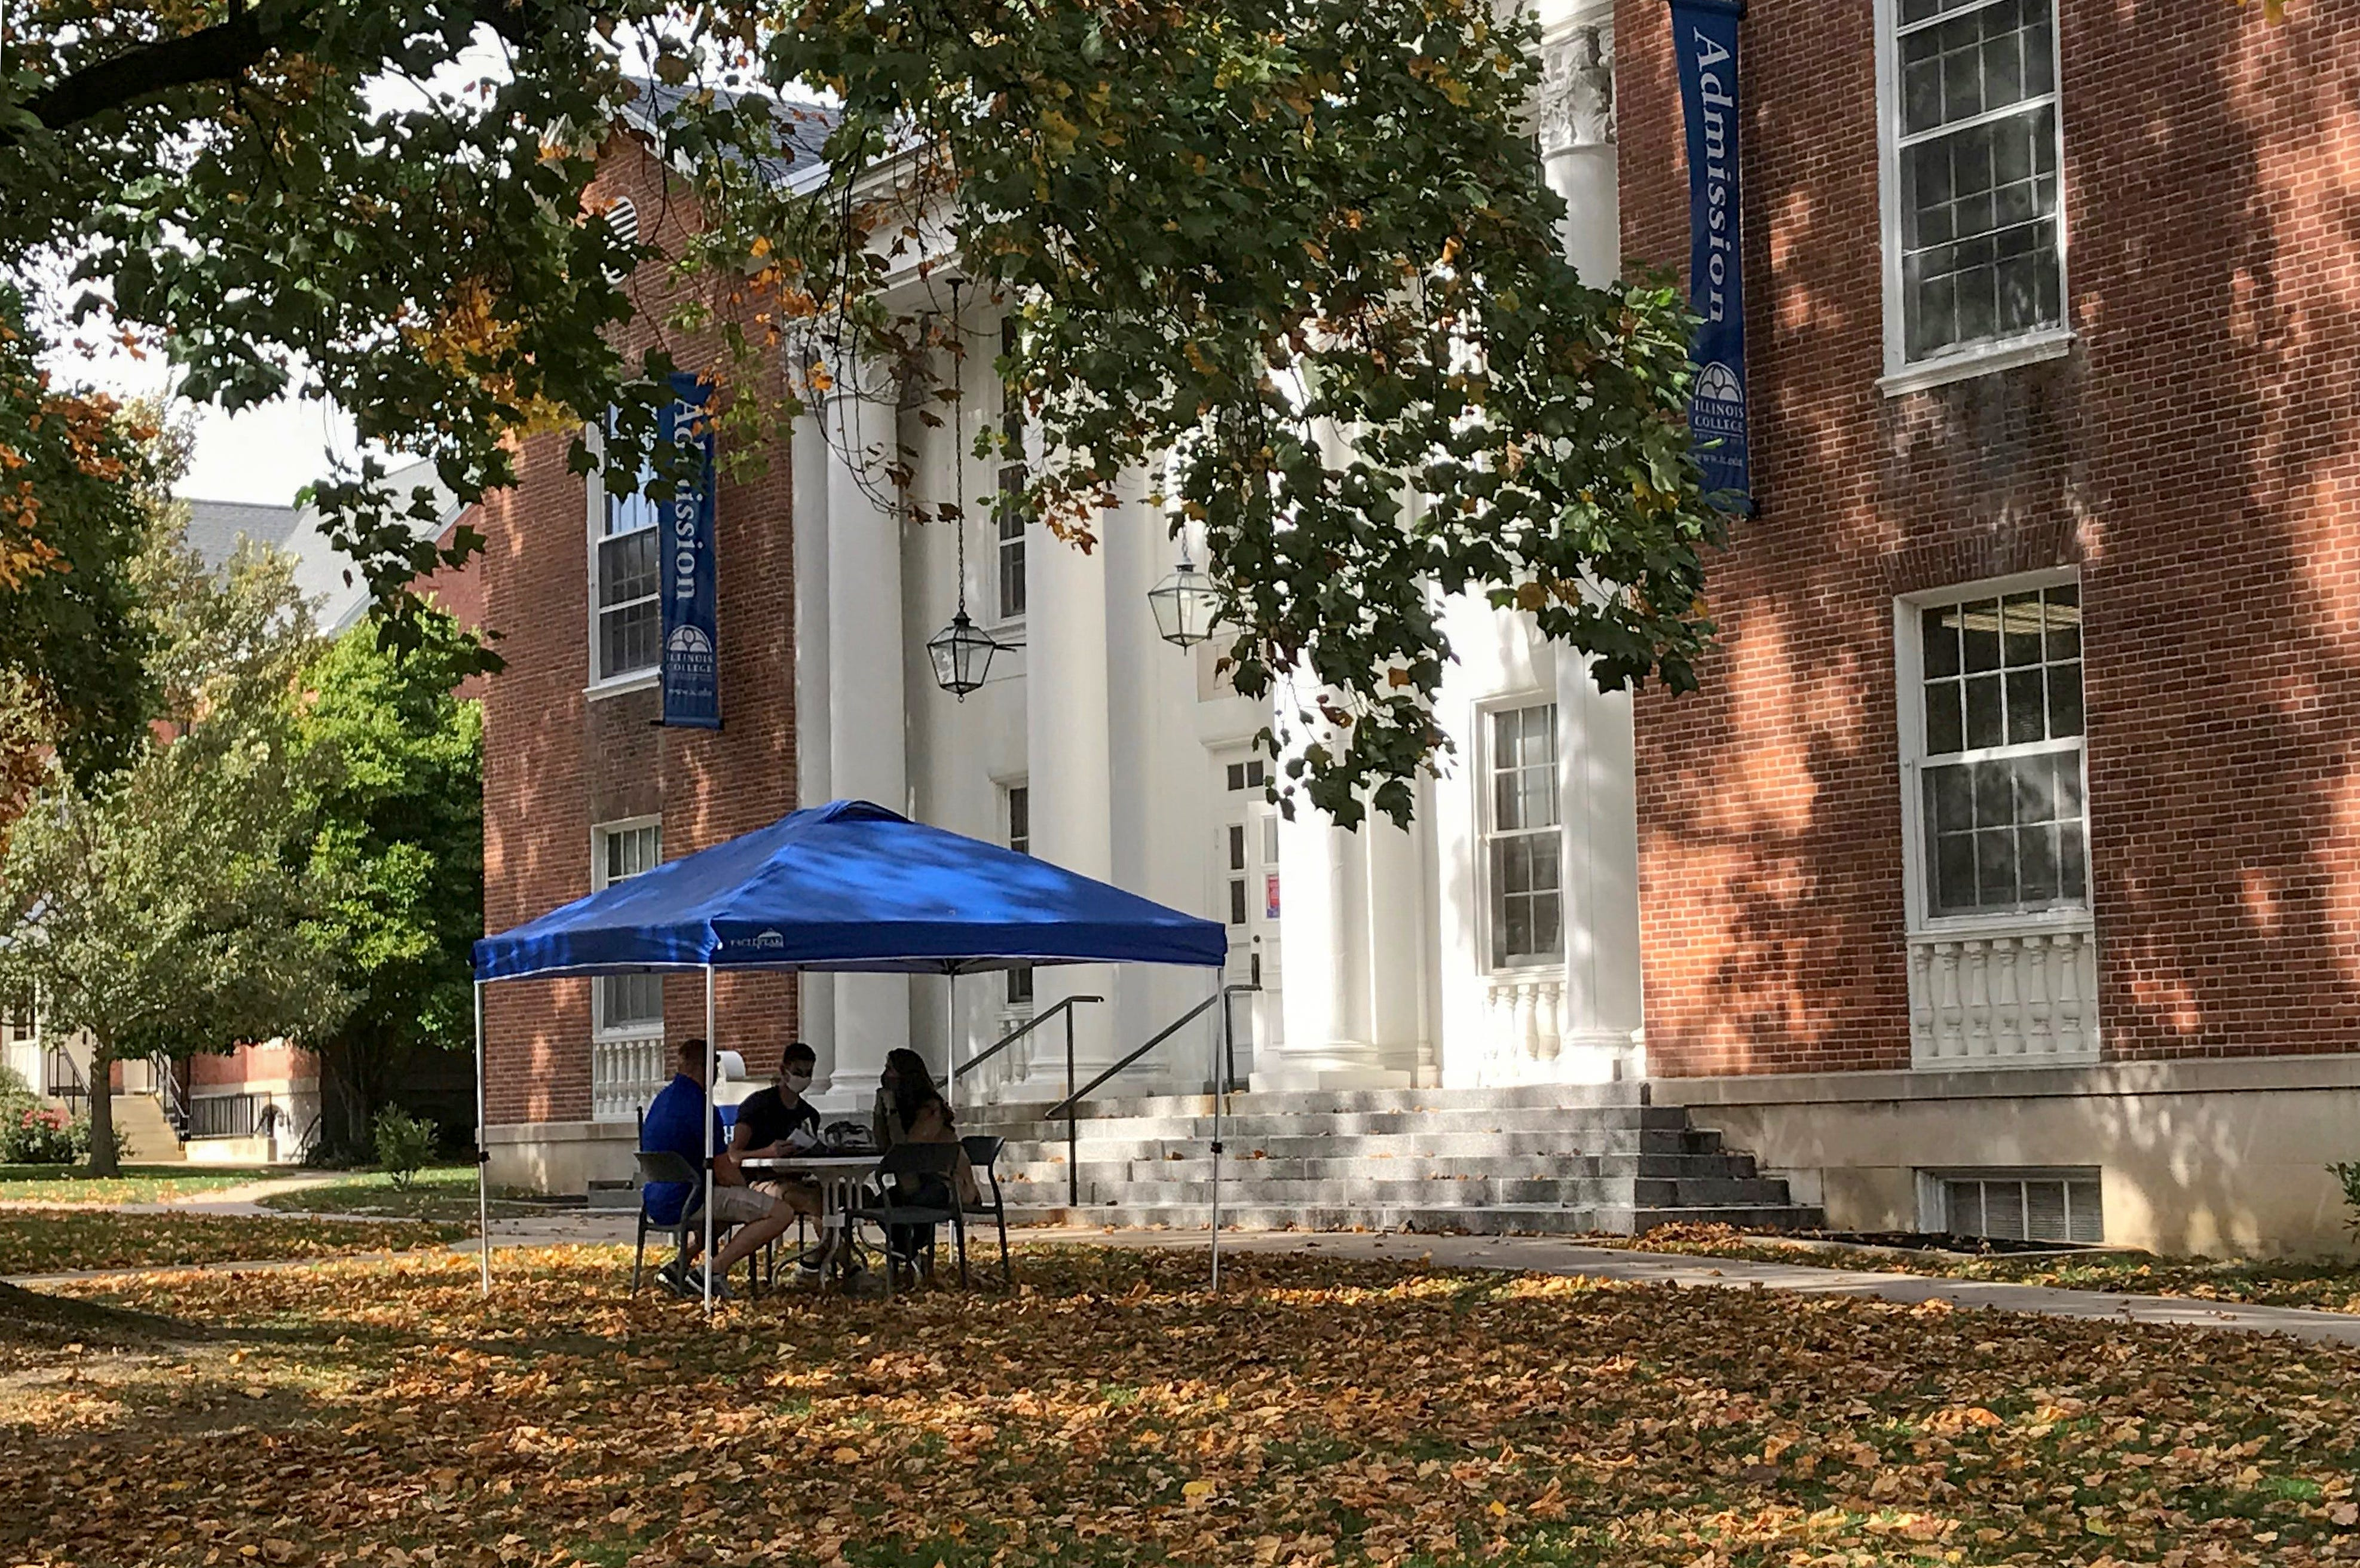 Potential students meet with an admissions counselor on a sunny early fall day on the campus of Illinois College